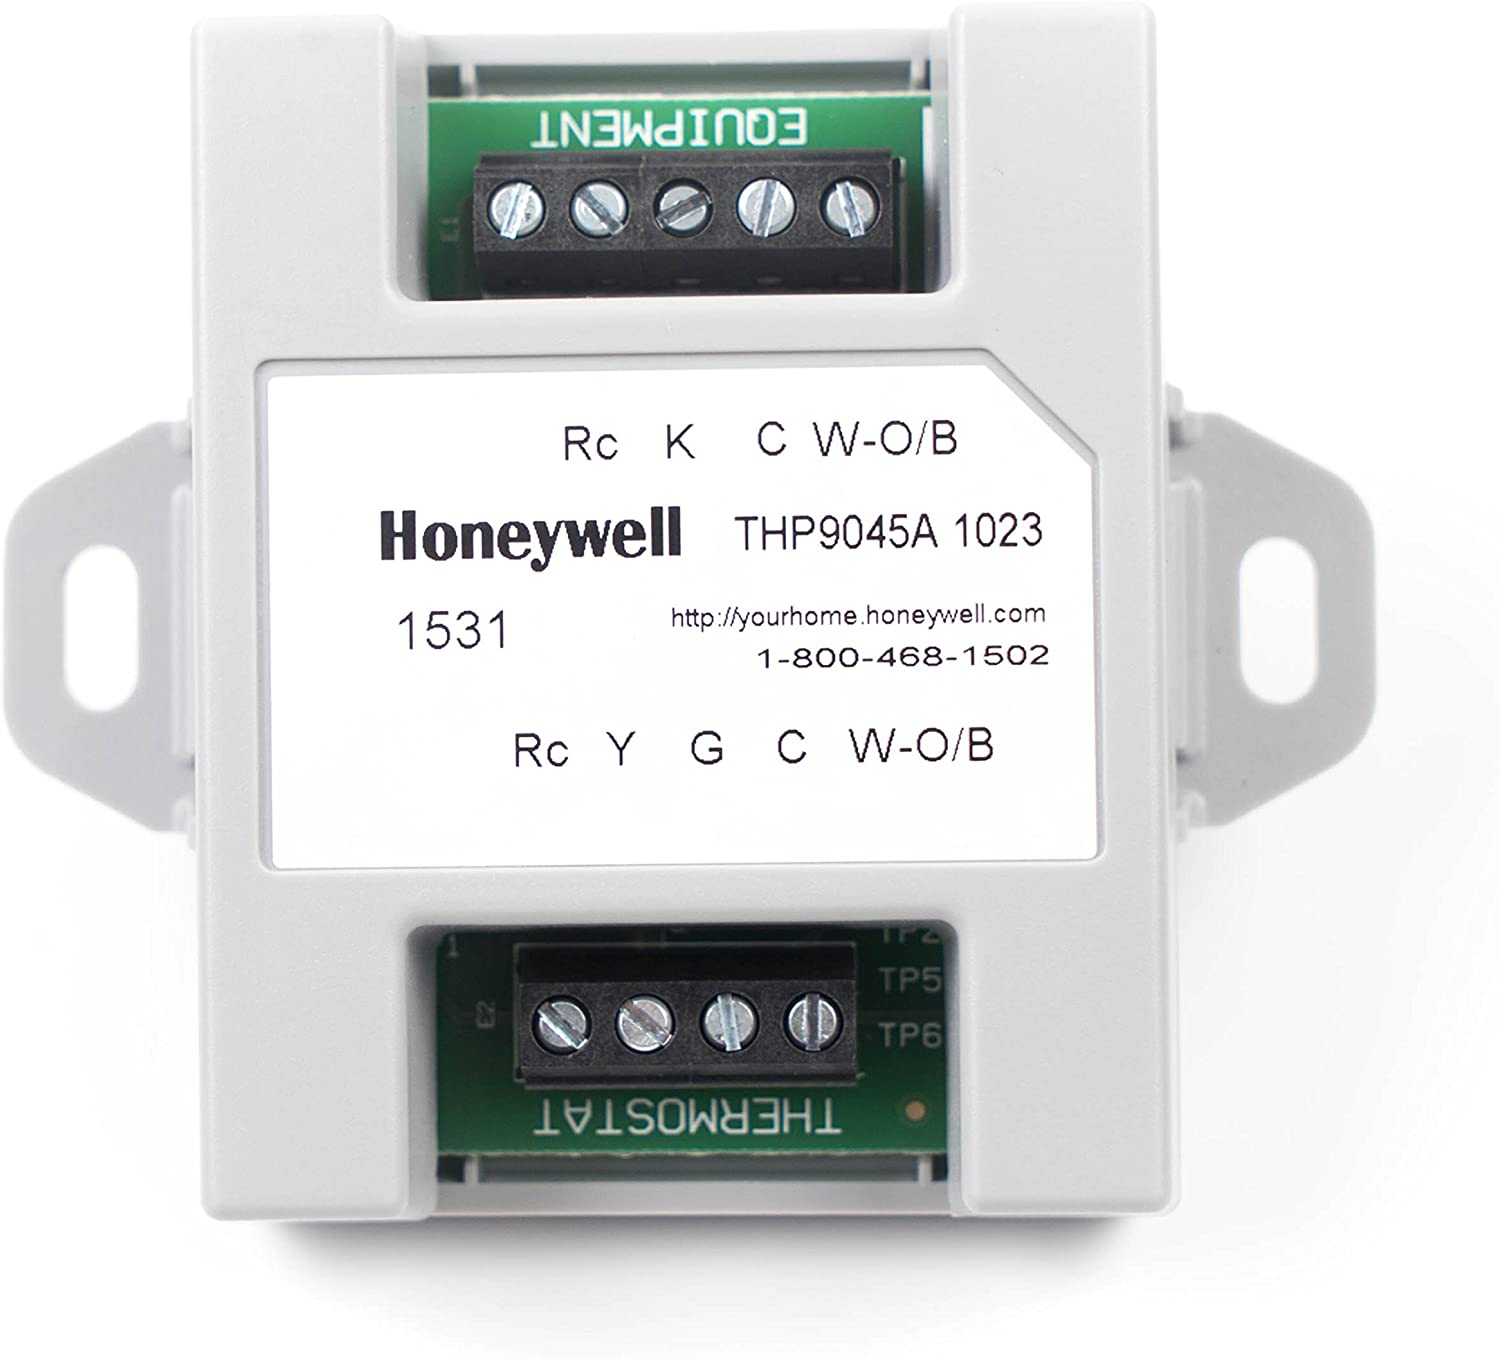 Honeywell THP9045A1023 Wiresaver Wiring Module for Thermostat